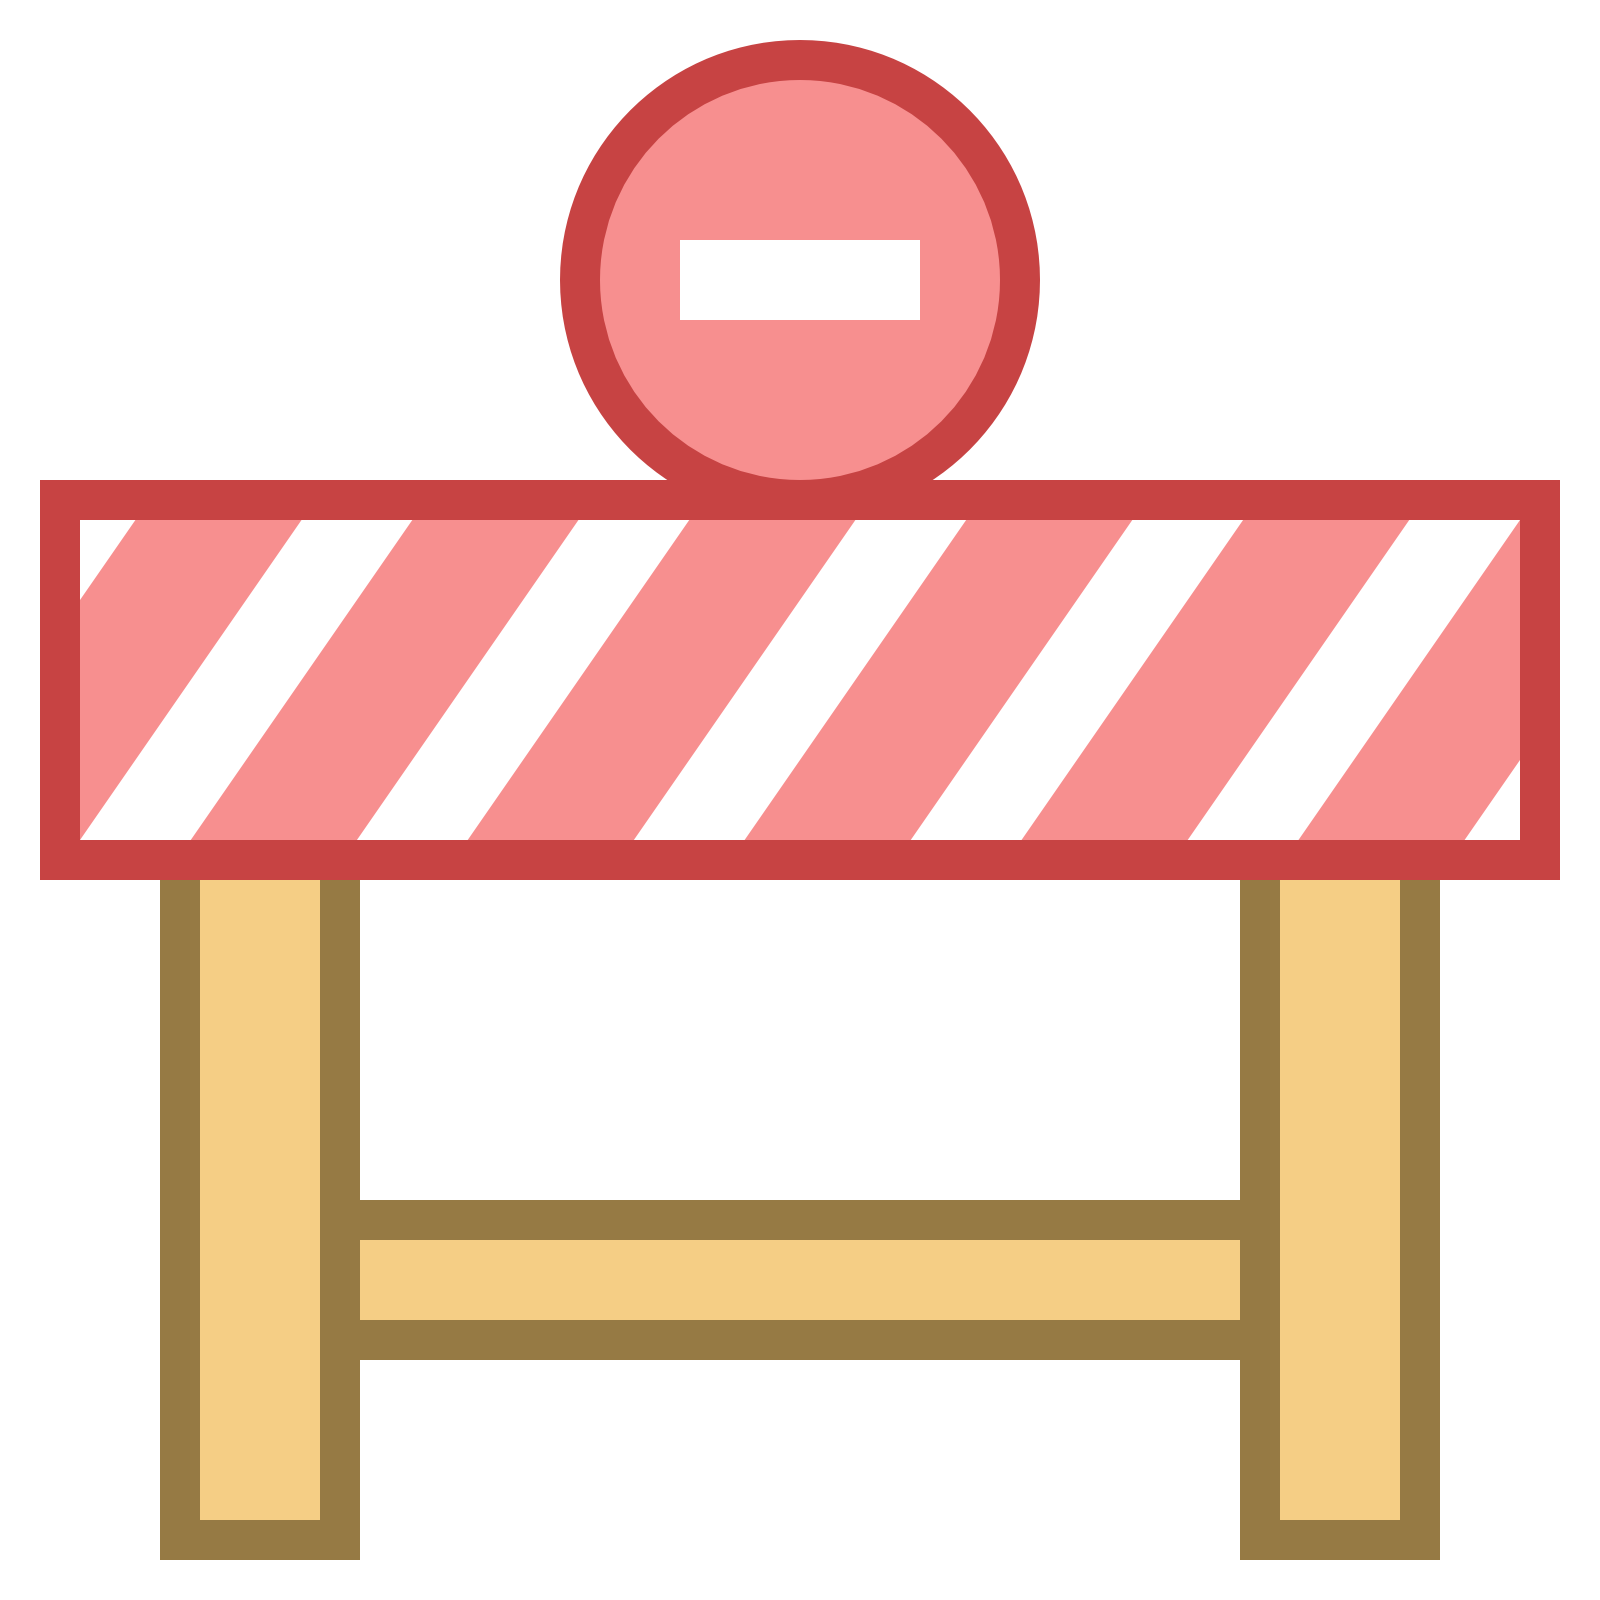 image transparent stock Middle clipart roadblock. Road block images gallery.